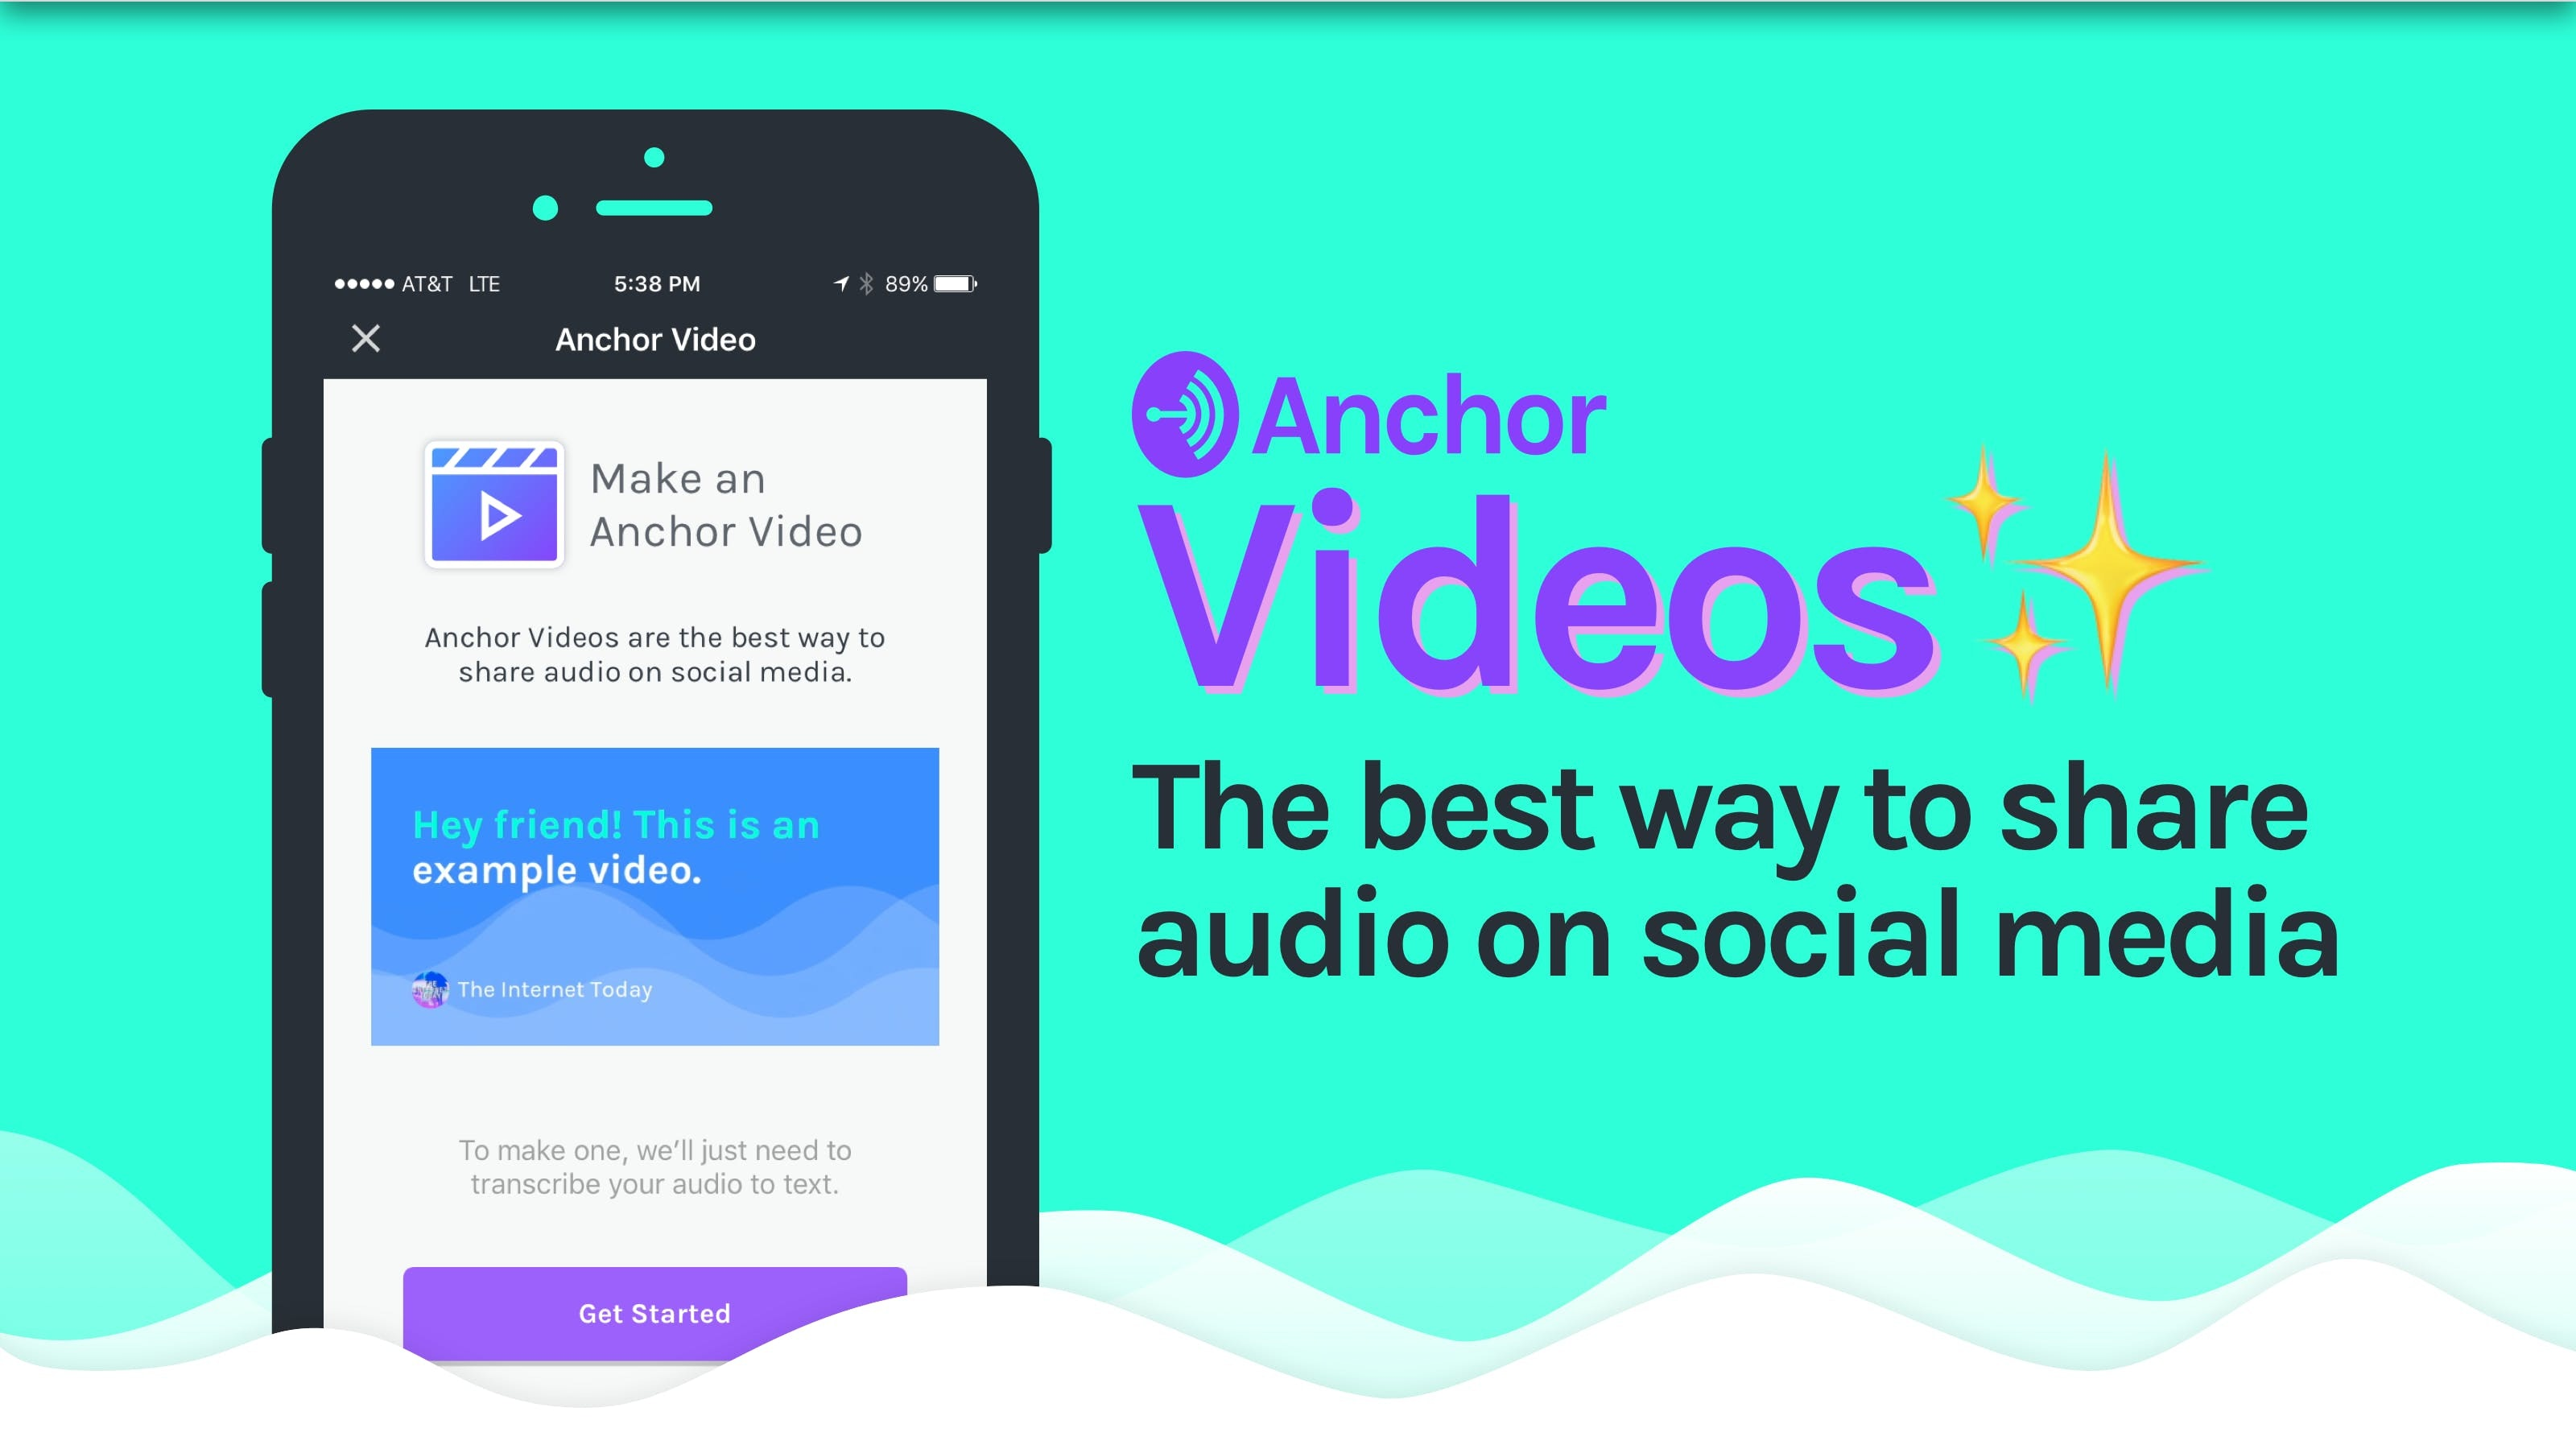 Anchor Videos - Magically transform audio to video and share it anywhere